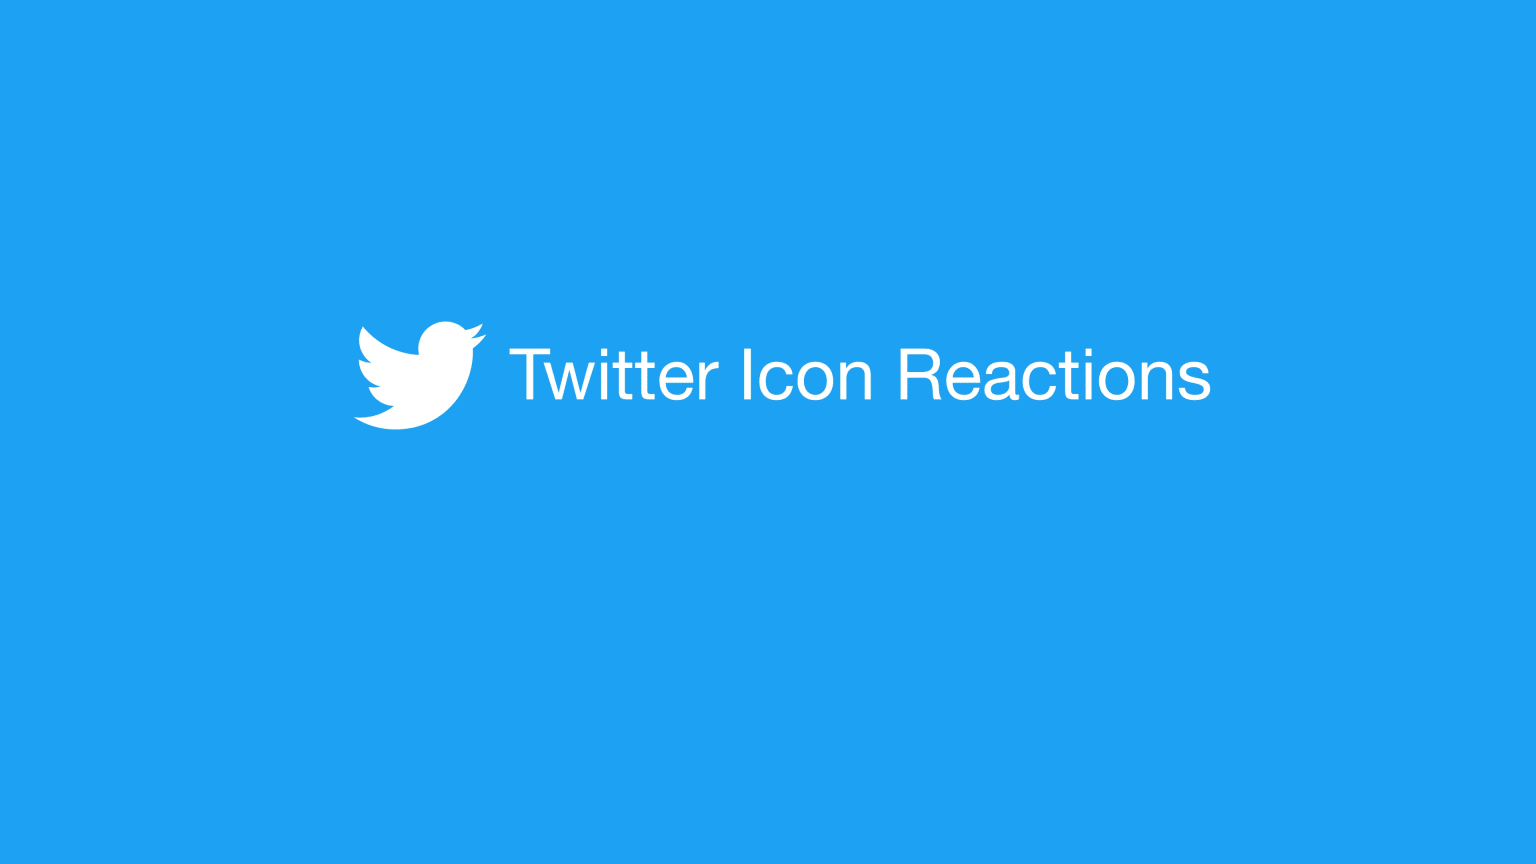 Twitter Icon Reactions